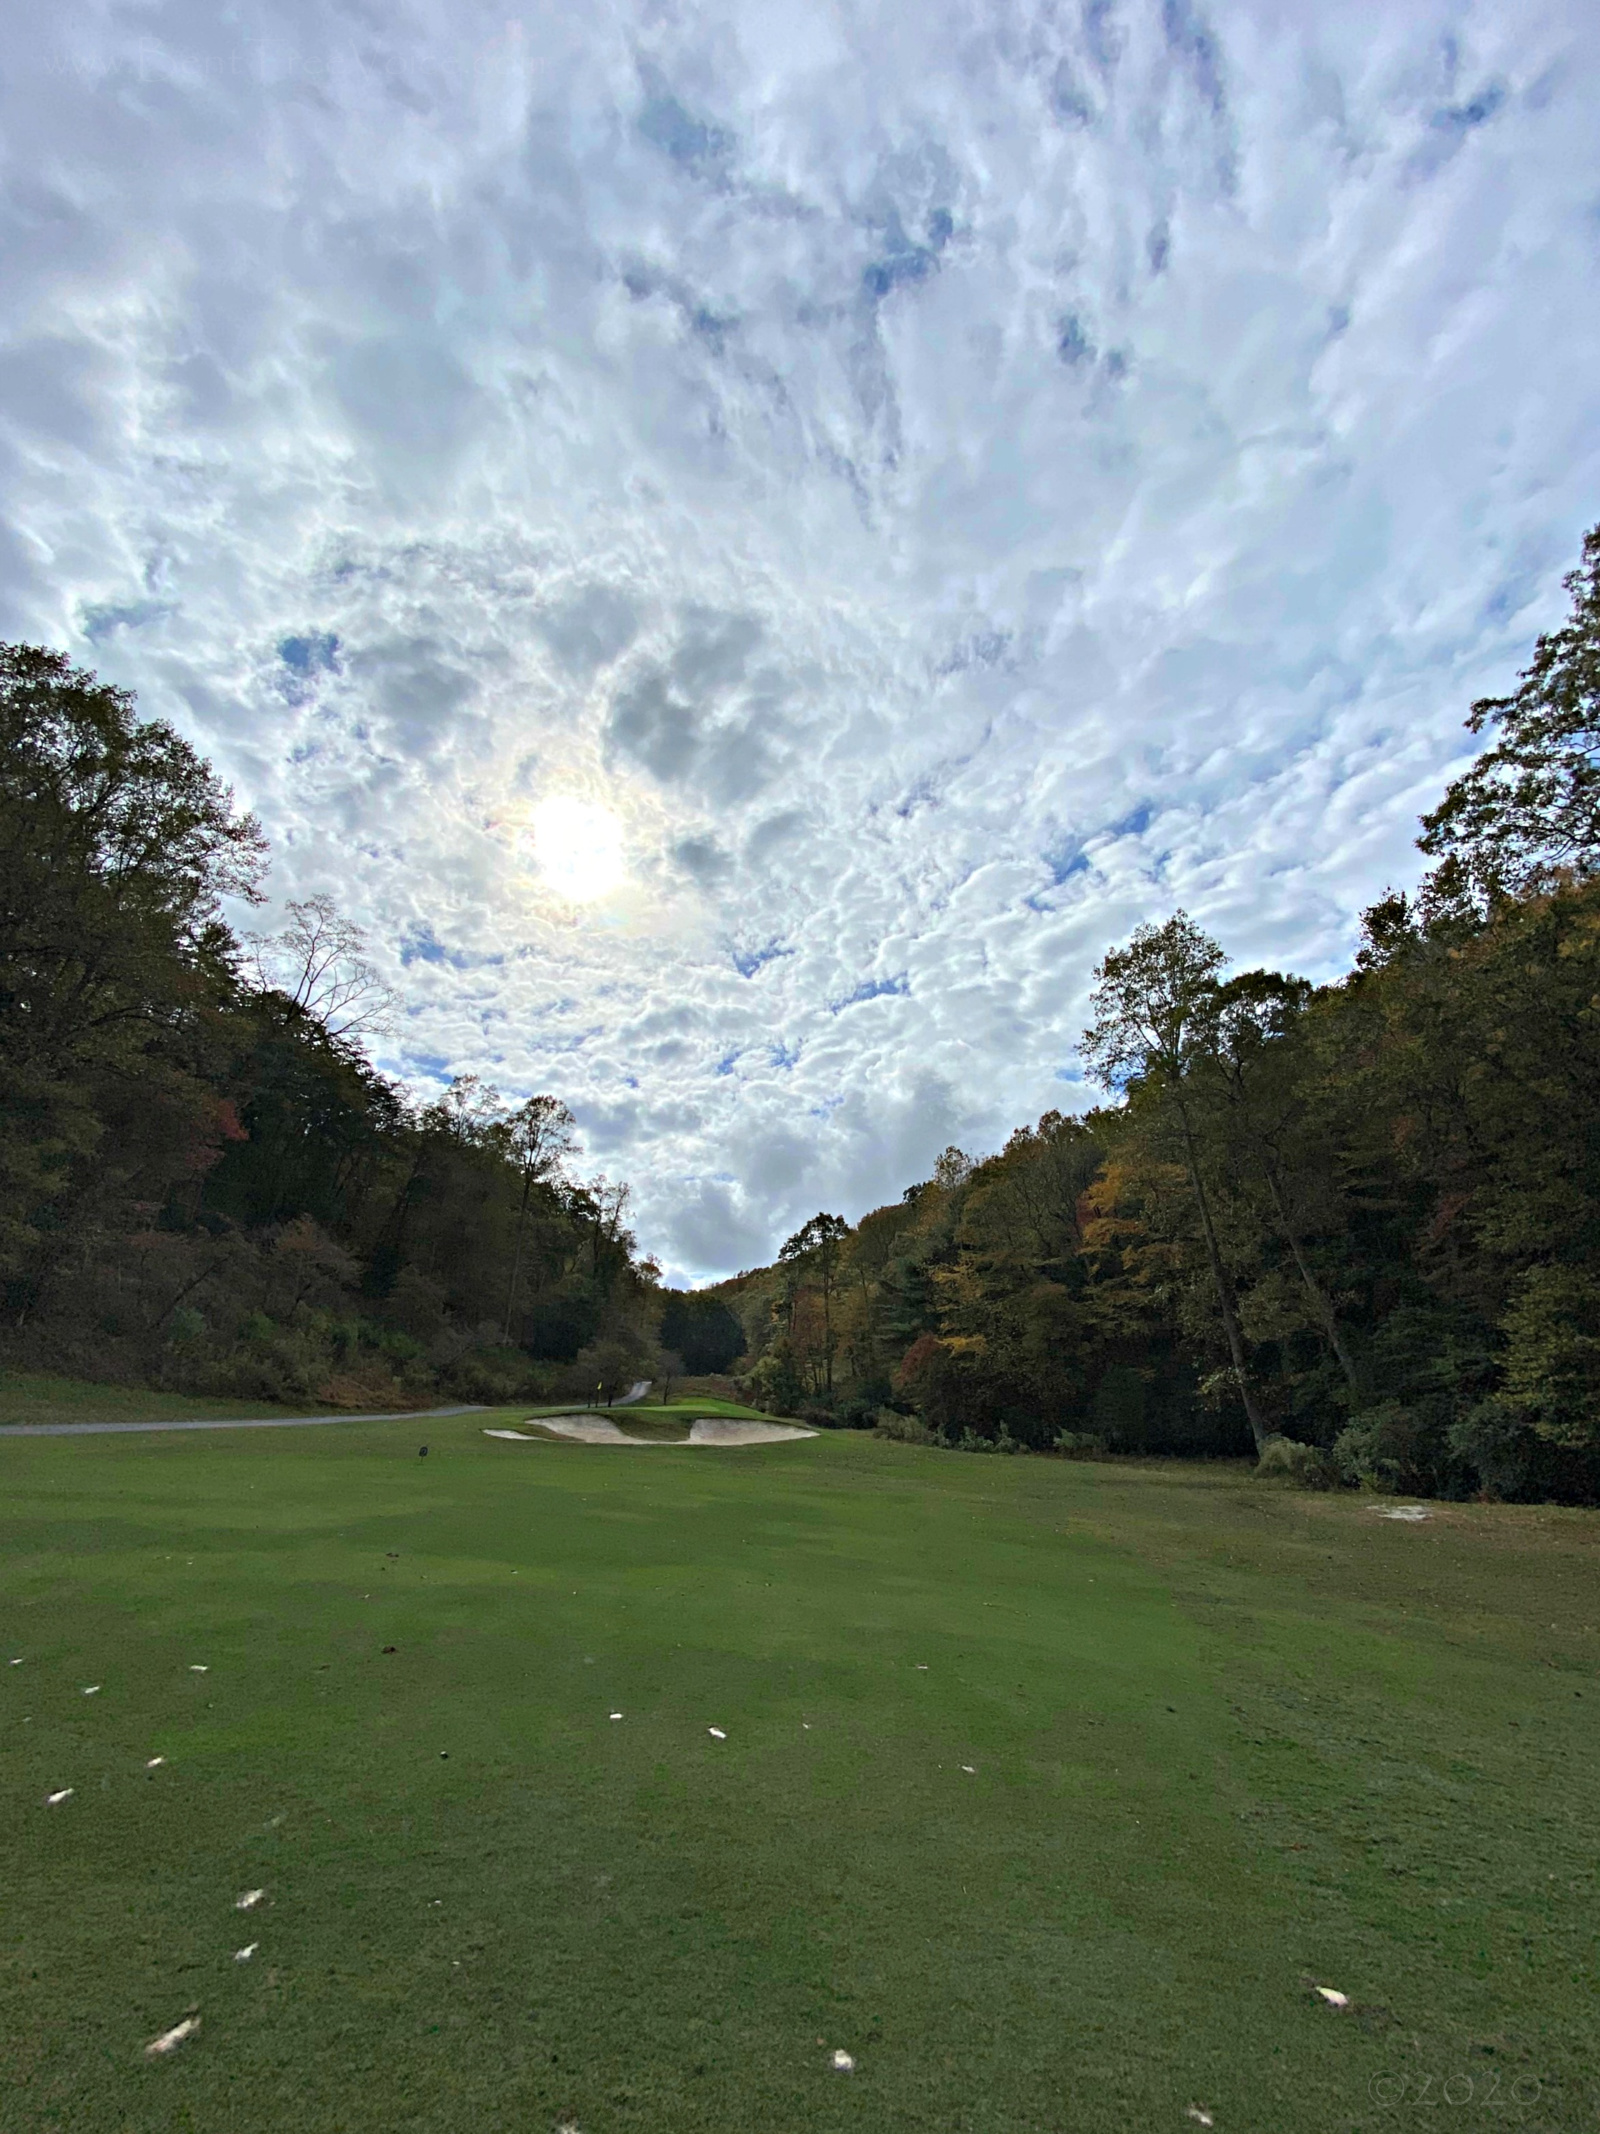 October 23, 2020 - Cool sky as seen from Hole 3 of the Bent Tree Golf Course